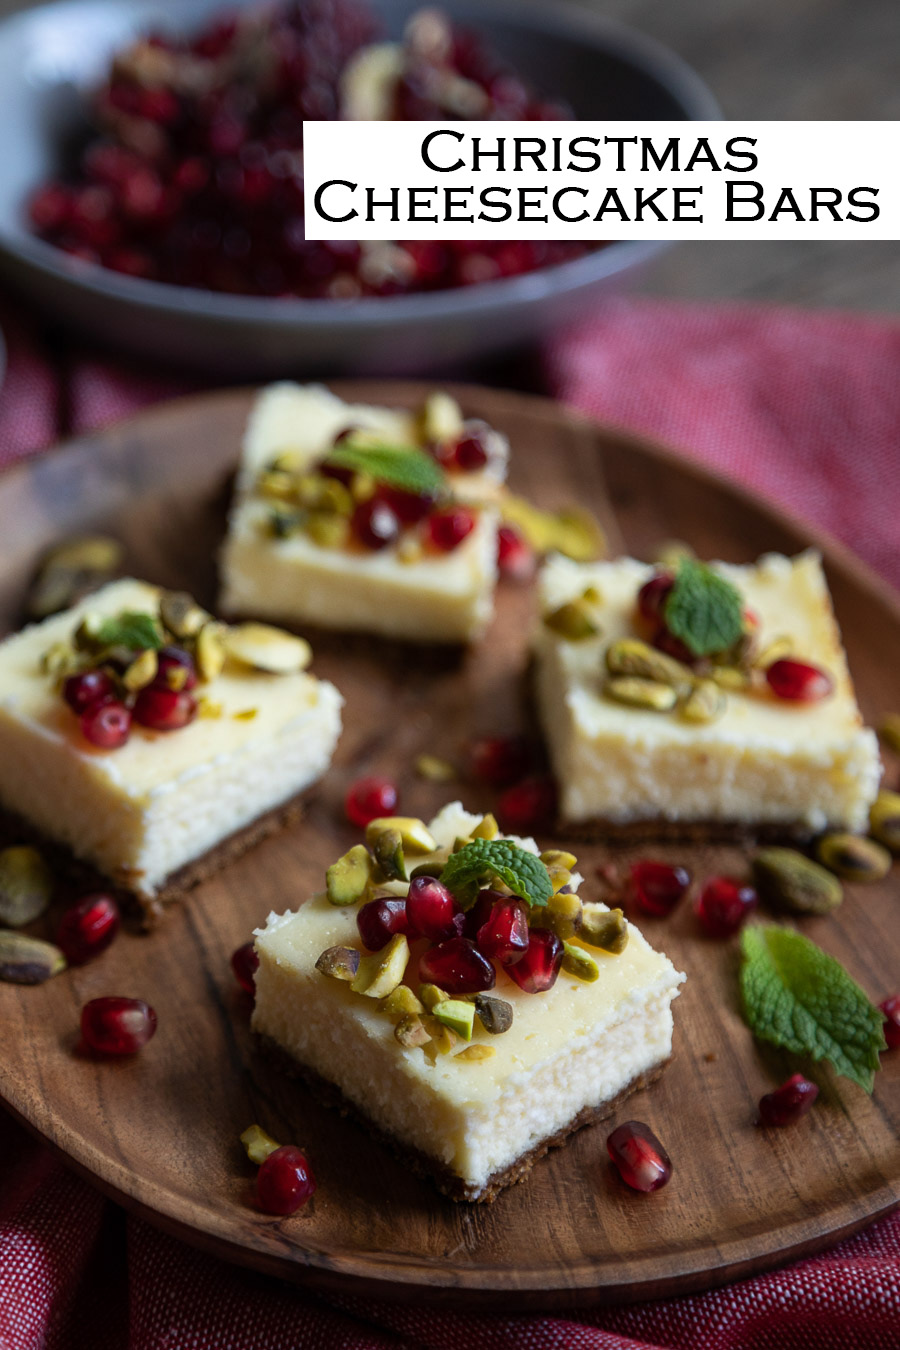 Christmas Cheesecake Bars. Gingersnap cookie crust with creamy cheesecake. Topped with red and green pomegranate arils, chopped pistachios, and mint leaves.